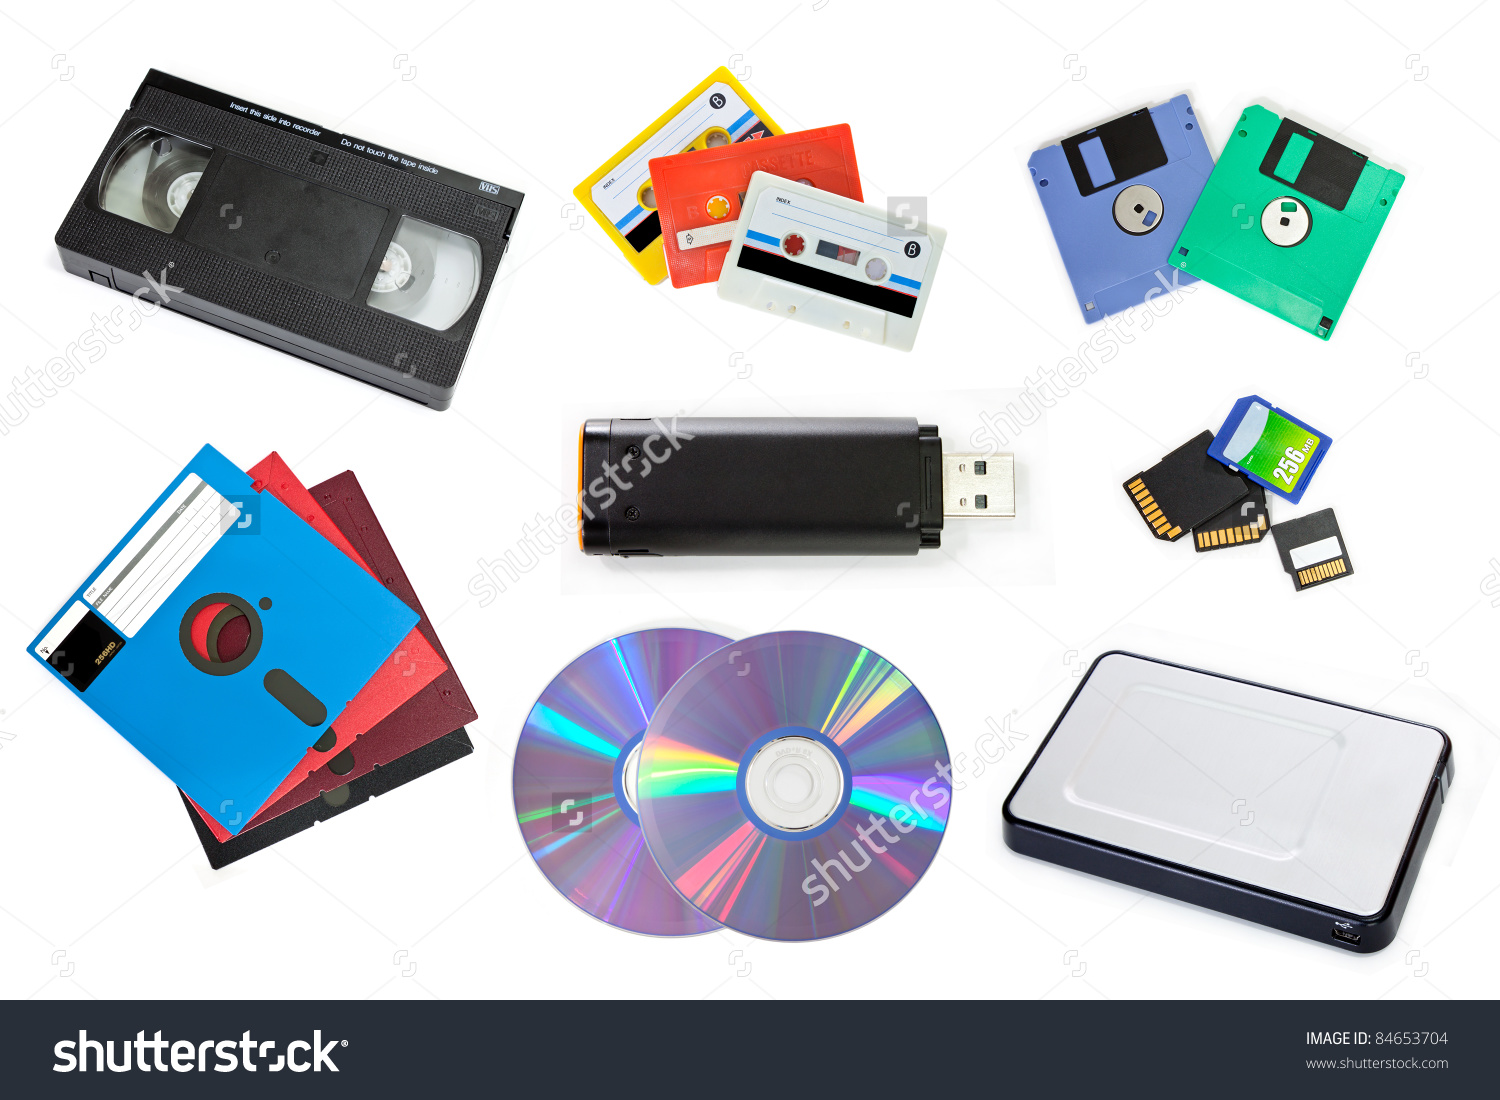 Variety Storage Device Isolated Stock Photo 84653704